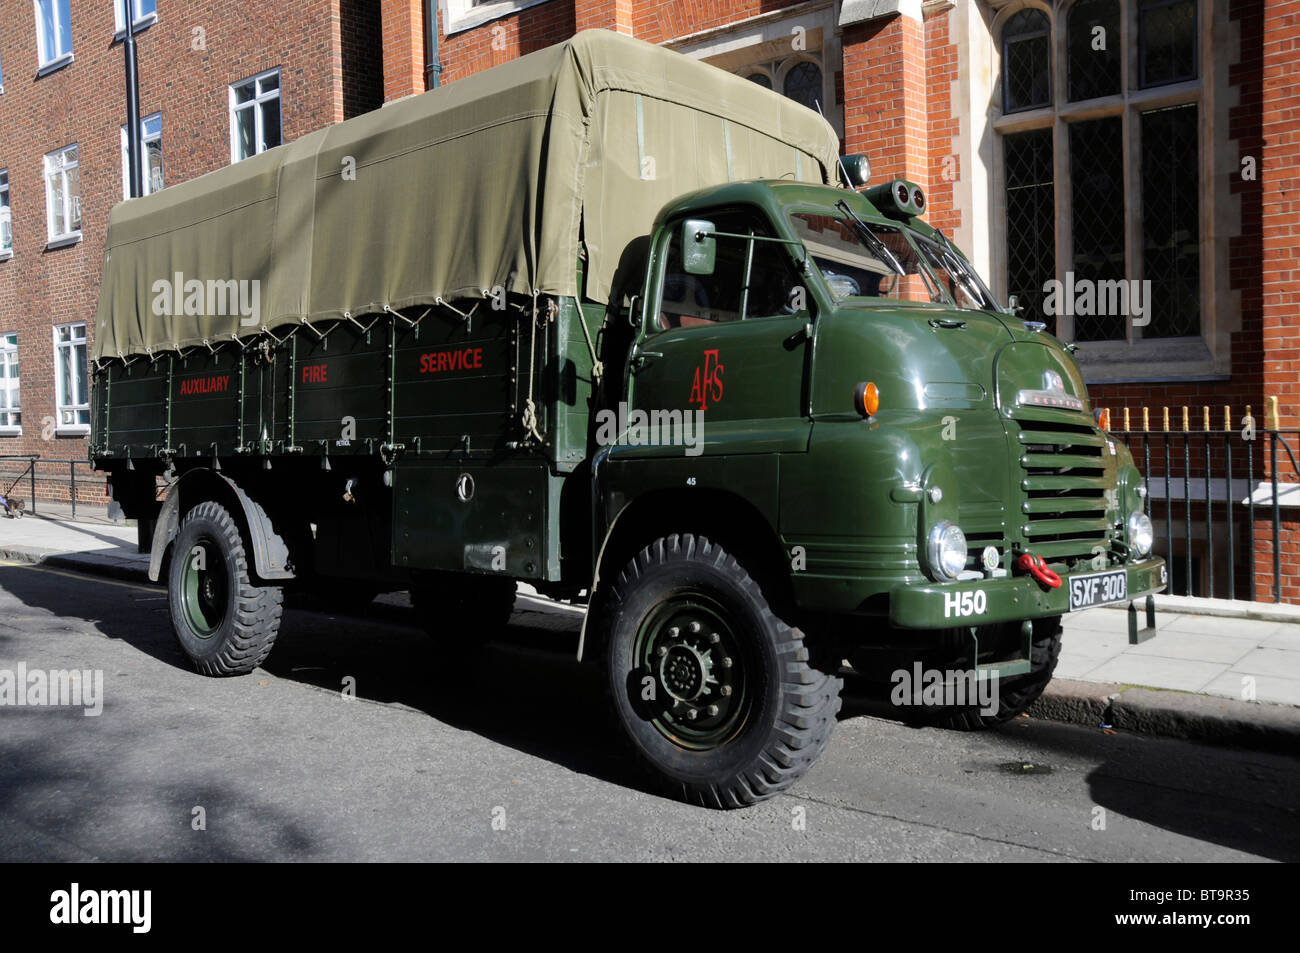 VINTAGE AUXILIARY FIRE BRIGADE VEHICLE ON DISPLAY IN LONDON UK - Stock Image